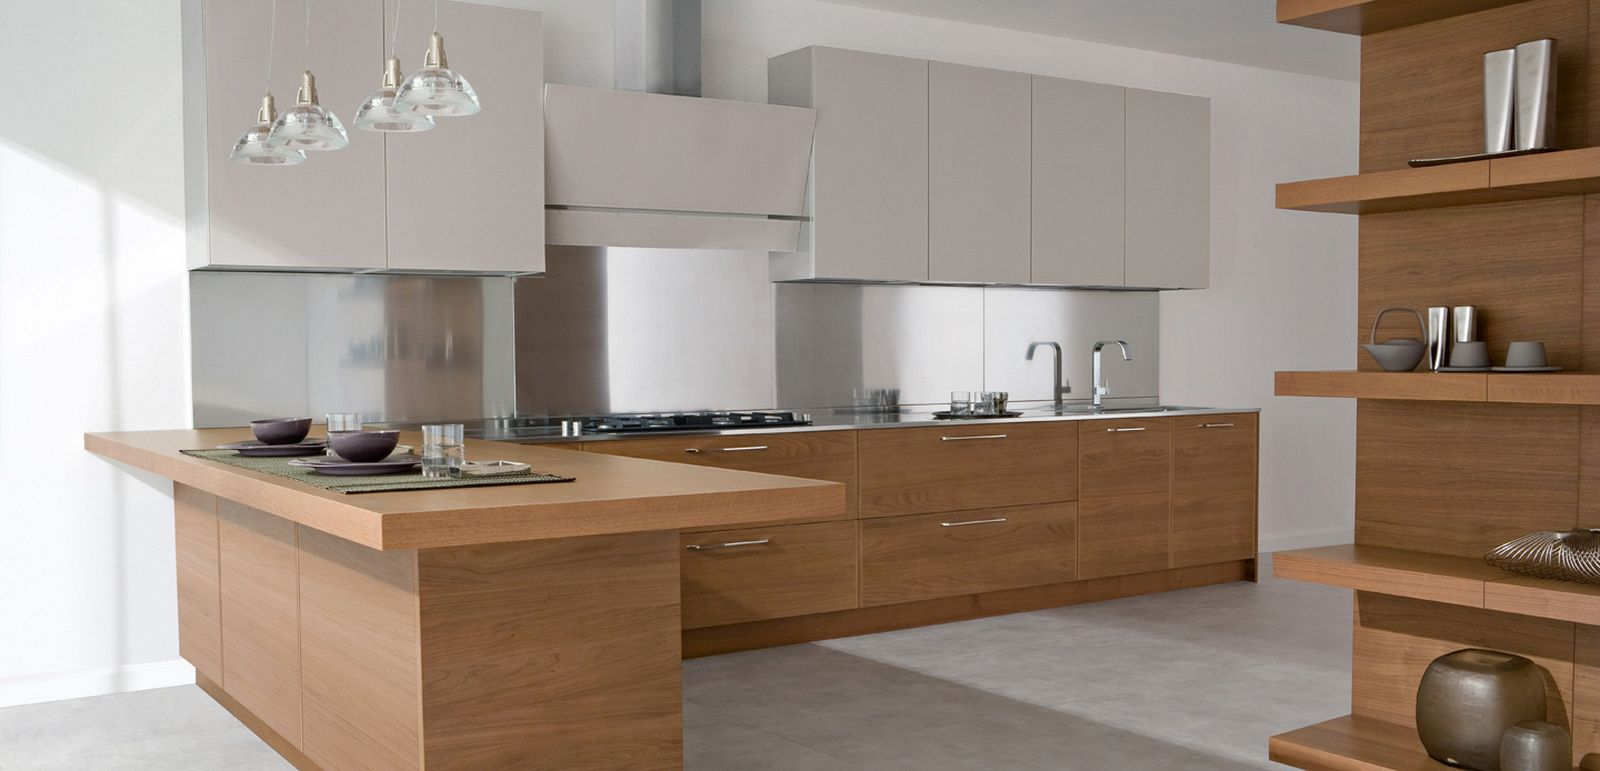 Modern kitchens in wooden finish allarchitecturedesigns for Model kitchen set 2016